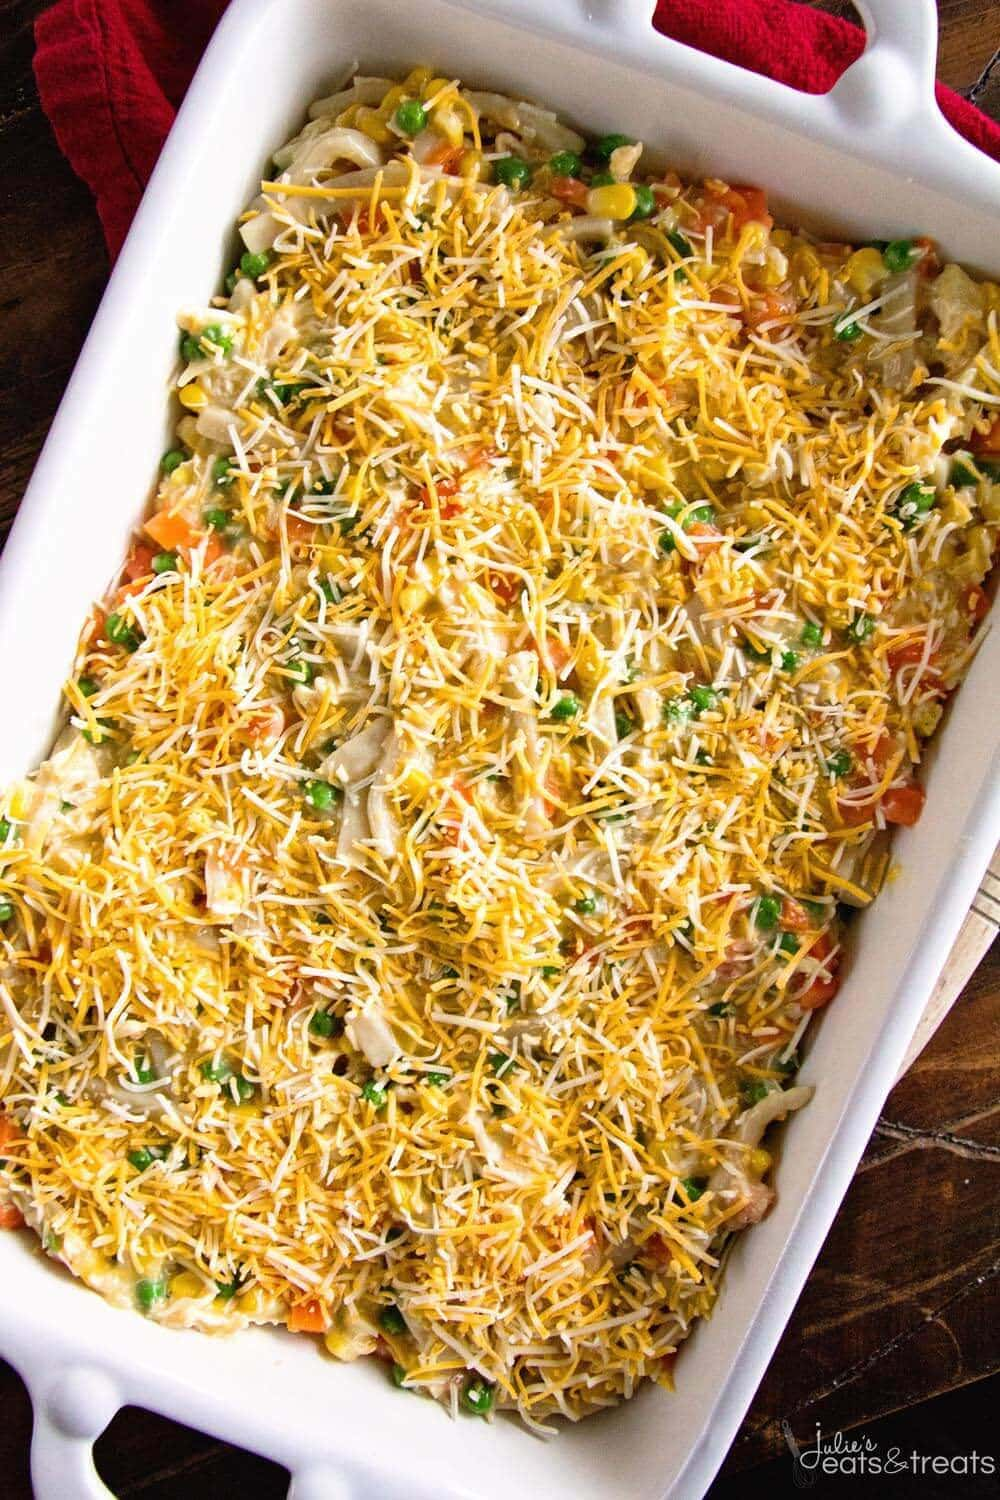 Cheesy Chicken Noodle Casserole ~ Easy, Hearty and Comforting Casserole Loaded with Chicken, Peas, Carrots, Corn and Egg Noodles! This Will Become a Family Favorite Dinner!